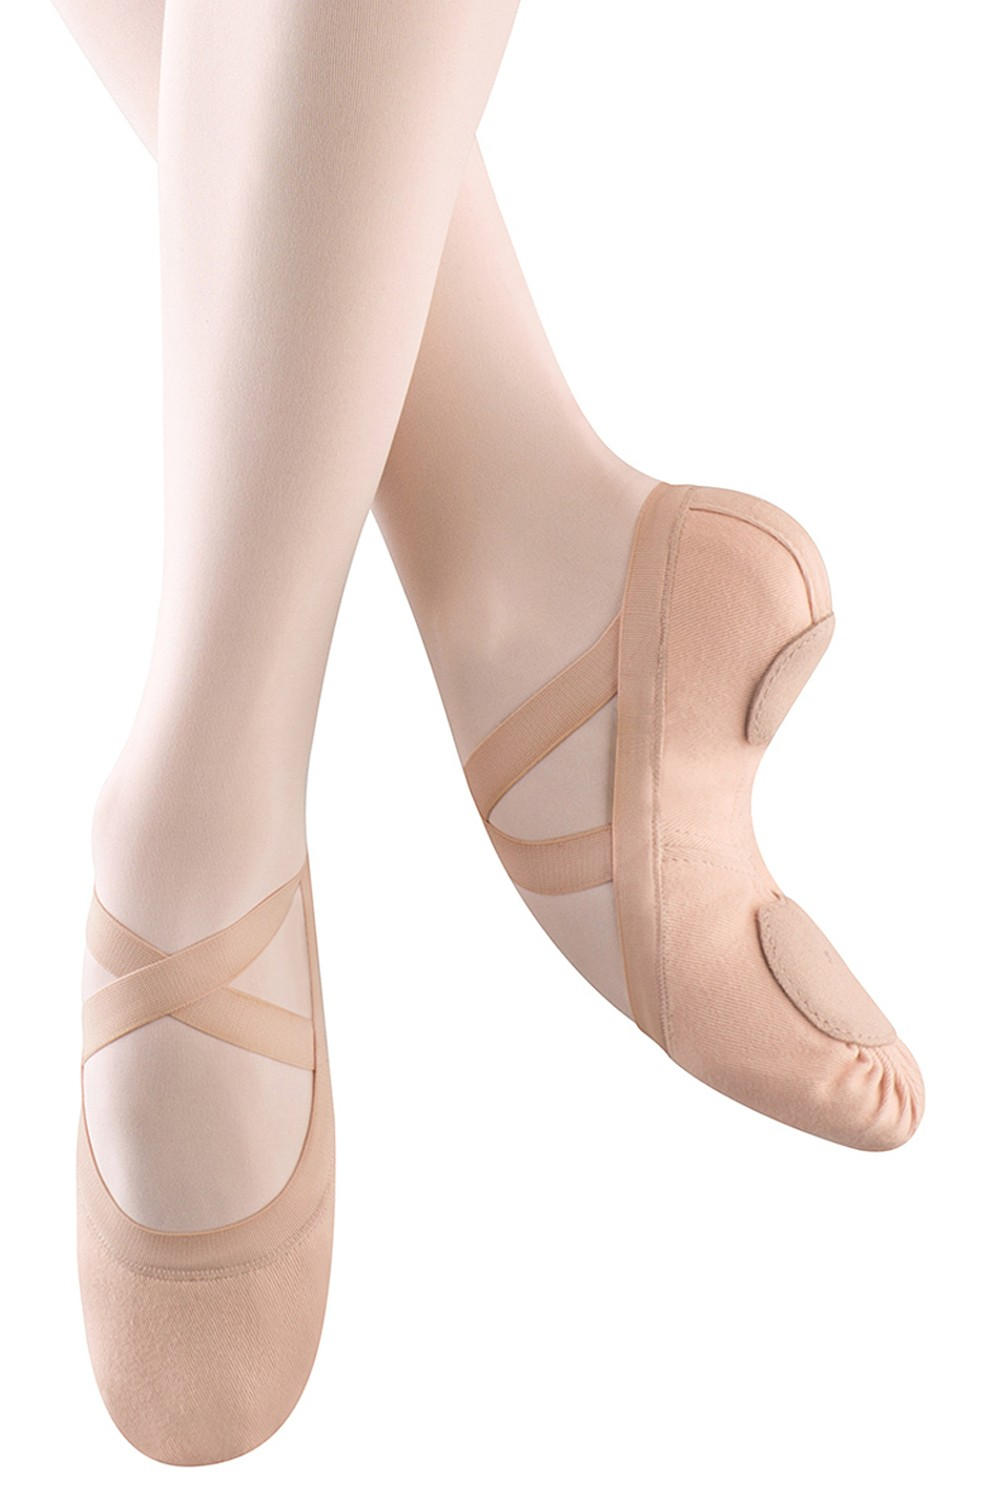 Celebrity favourite brand of ballerinas, ballet flats, ballet pumps and other quality flat footwear made by hand since